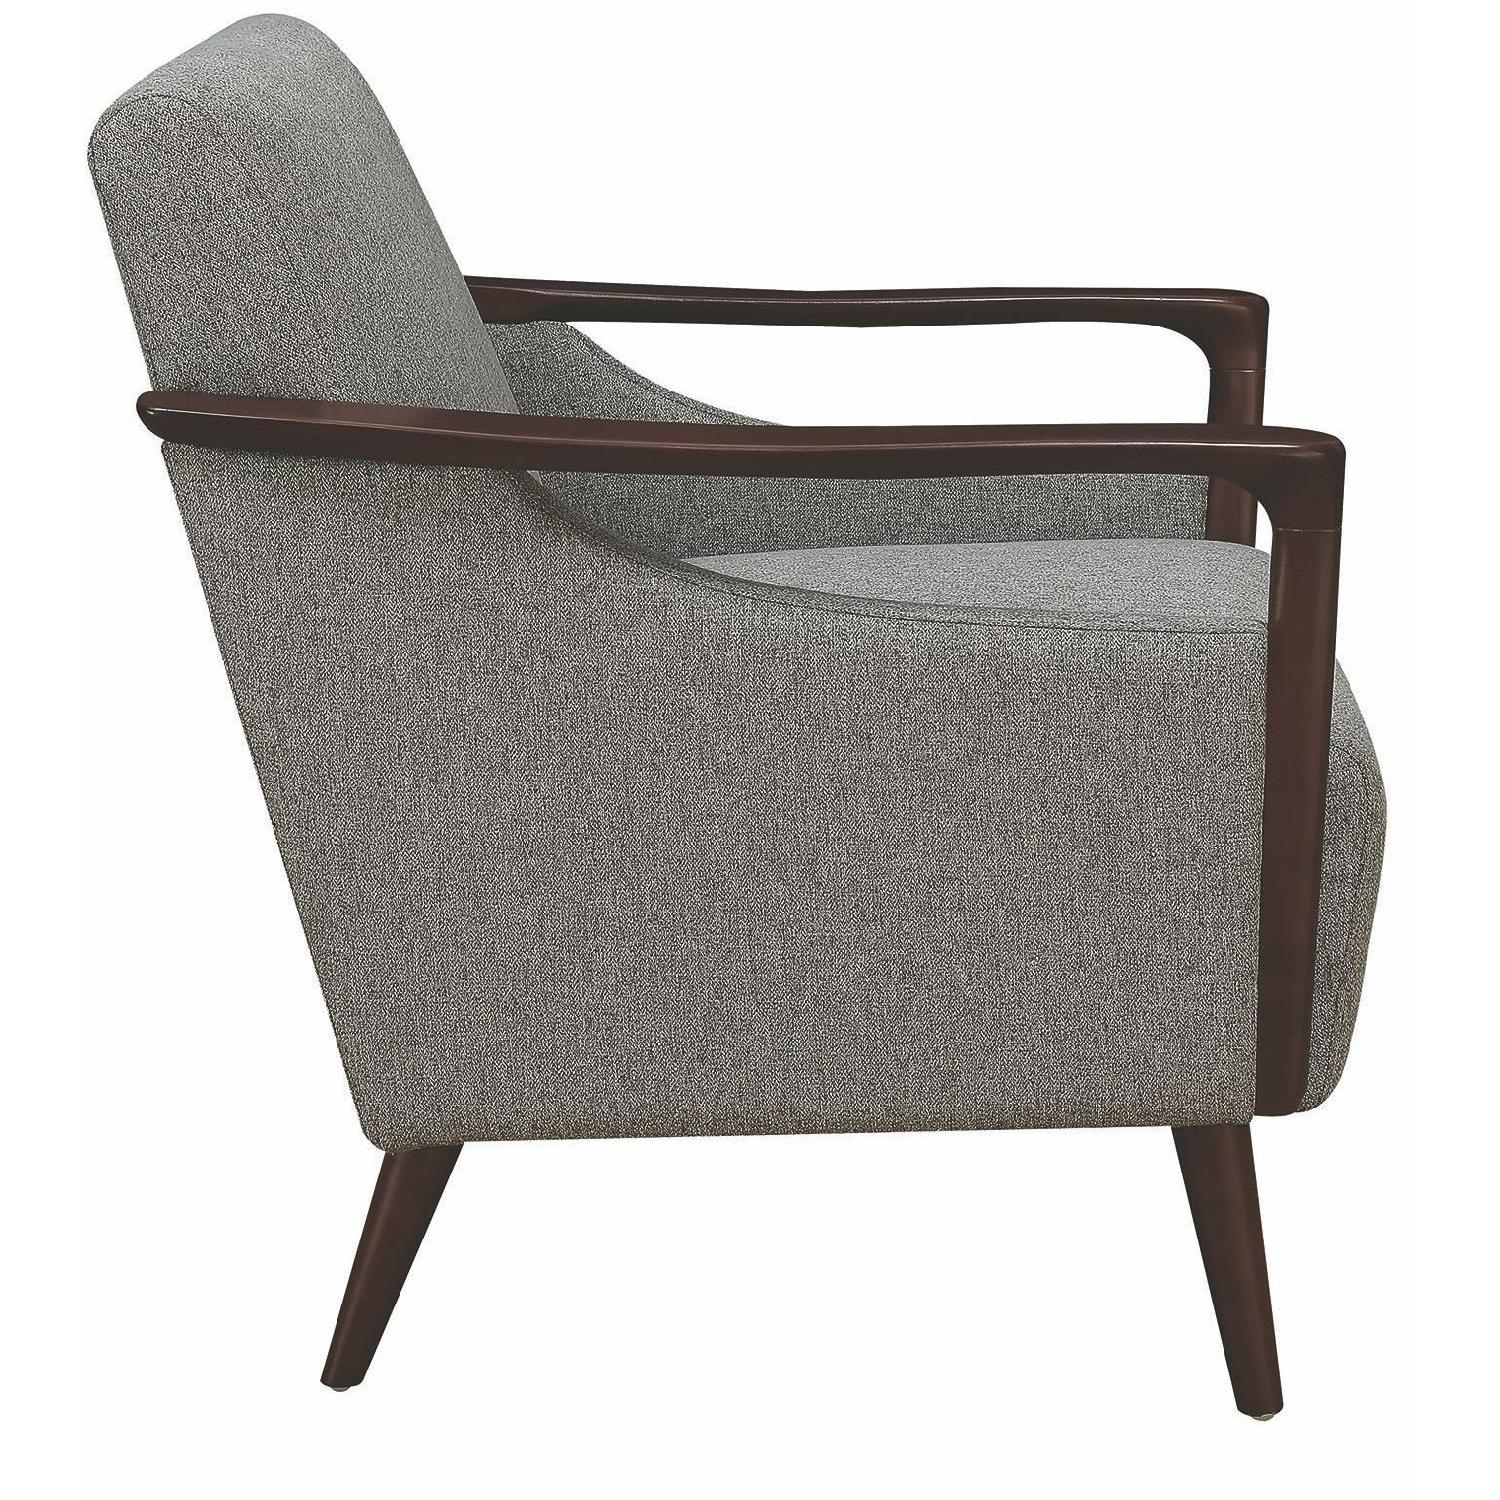 Mid century modern accent chair in grey fabric w wood